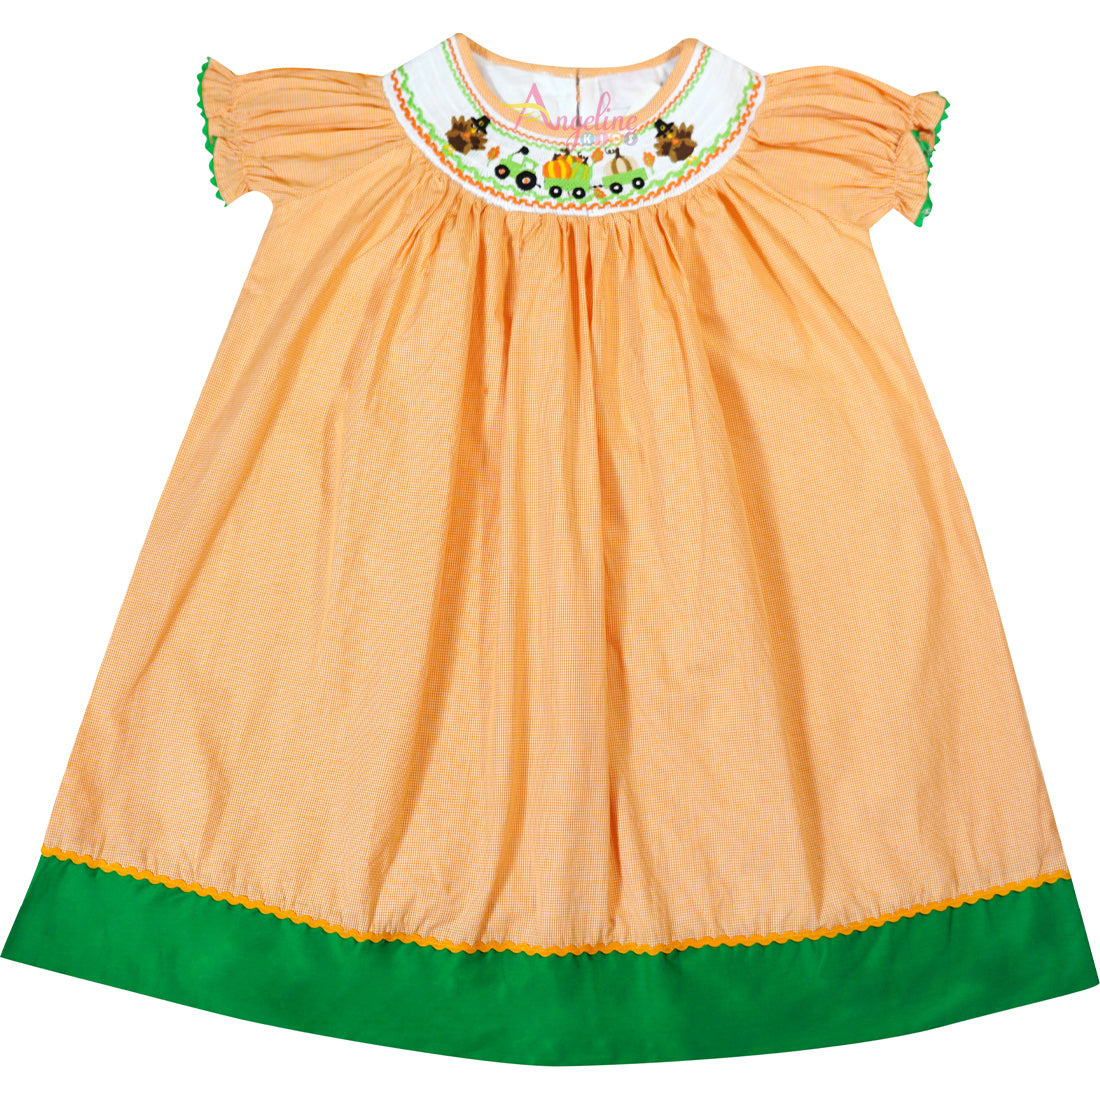 Baby Toddler Little Girl Thankskgiving Turkey & Pumpkin Tractor Gingham Bishop Dress - Orange/Green